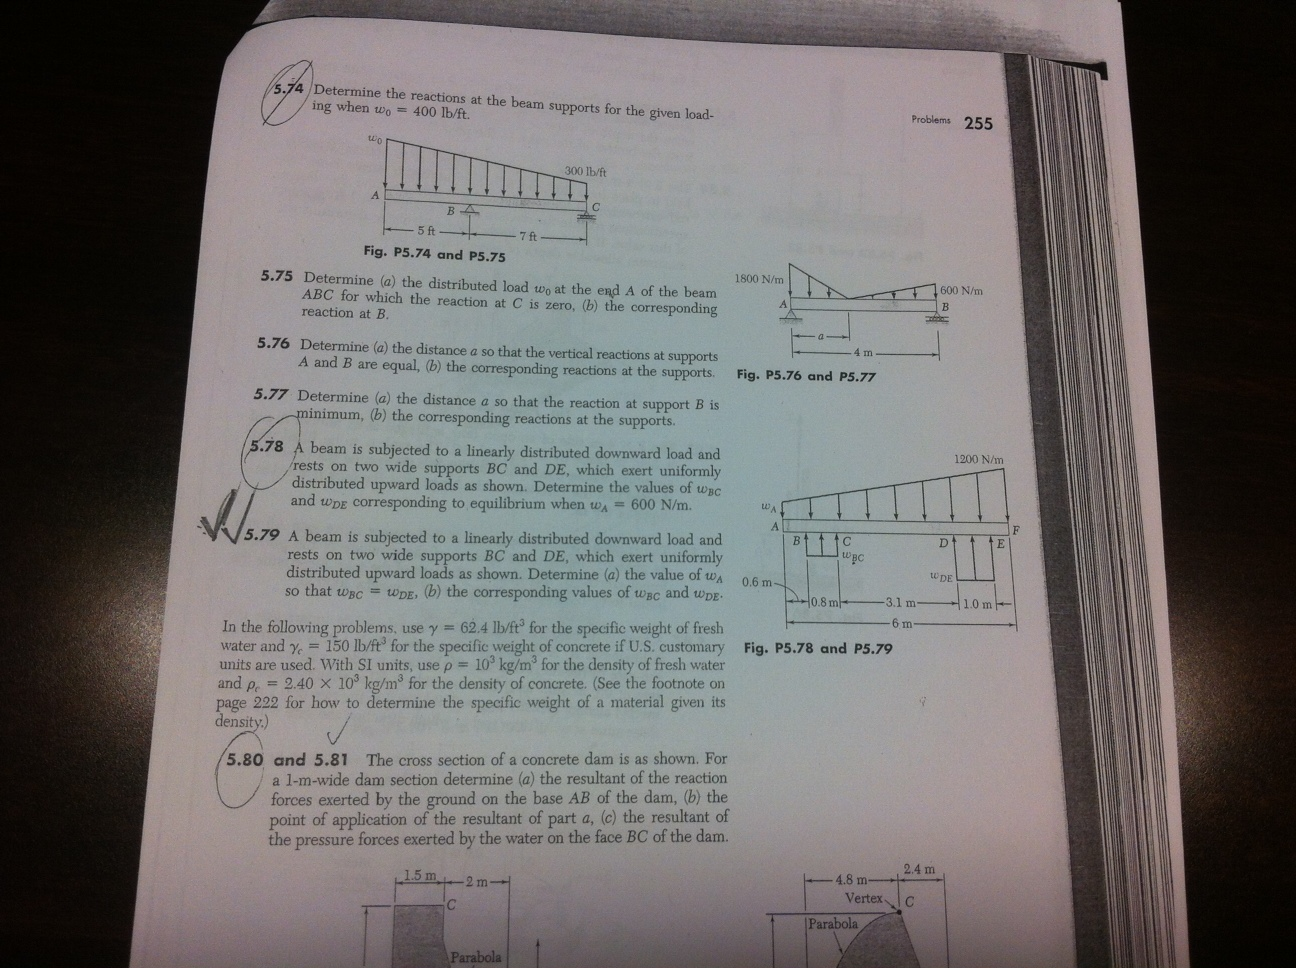 Determine the reactions at the beam supports for t